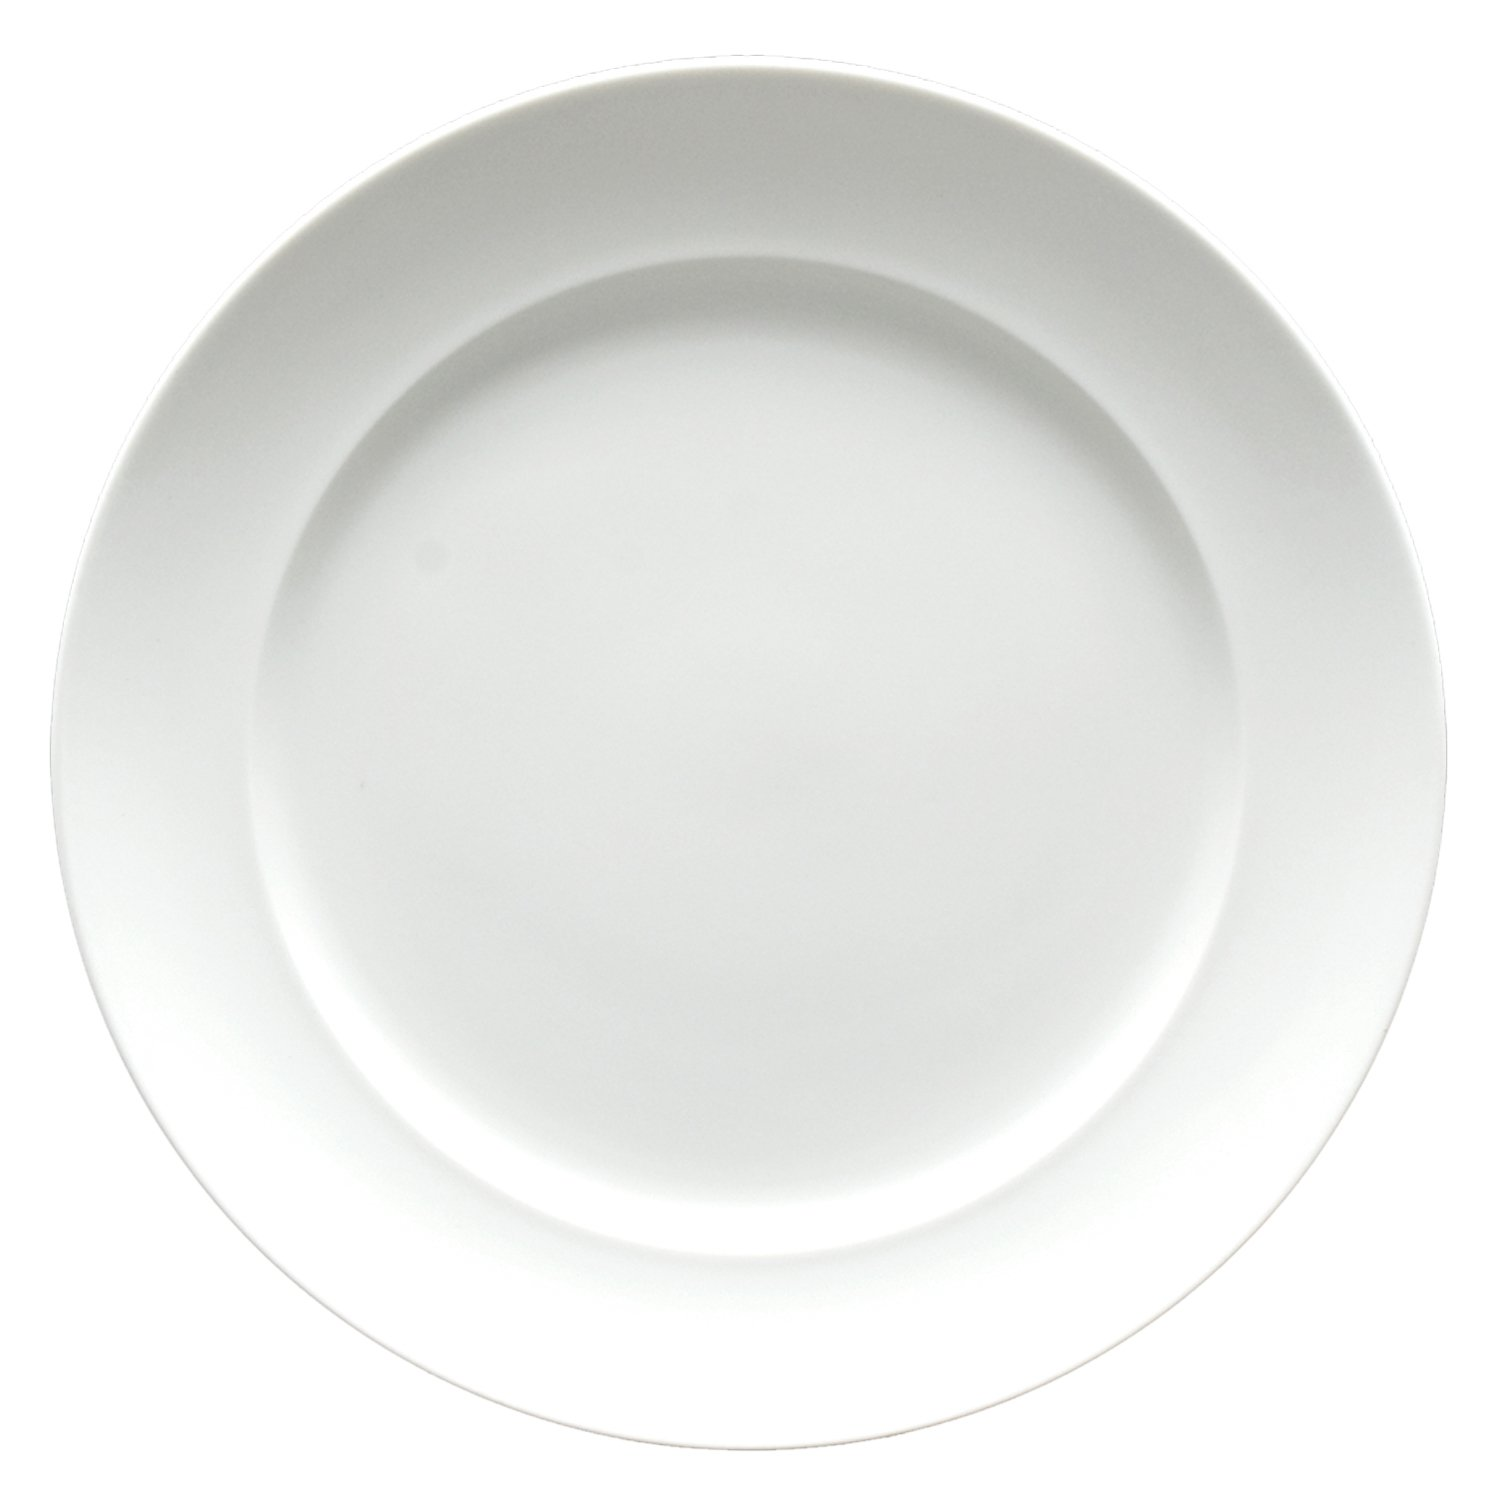 Fortessa Fortaluxe SuperWhite Vitrified China Cassia 11-3/4-Inch Dinner Plate, Set of 6 Fortessa /Schott Zwiesel 6000.F0000.14